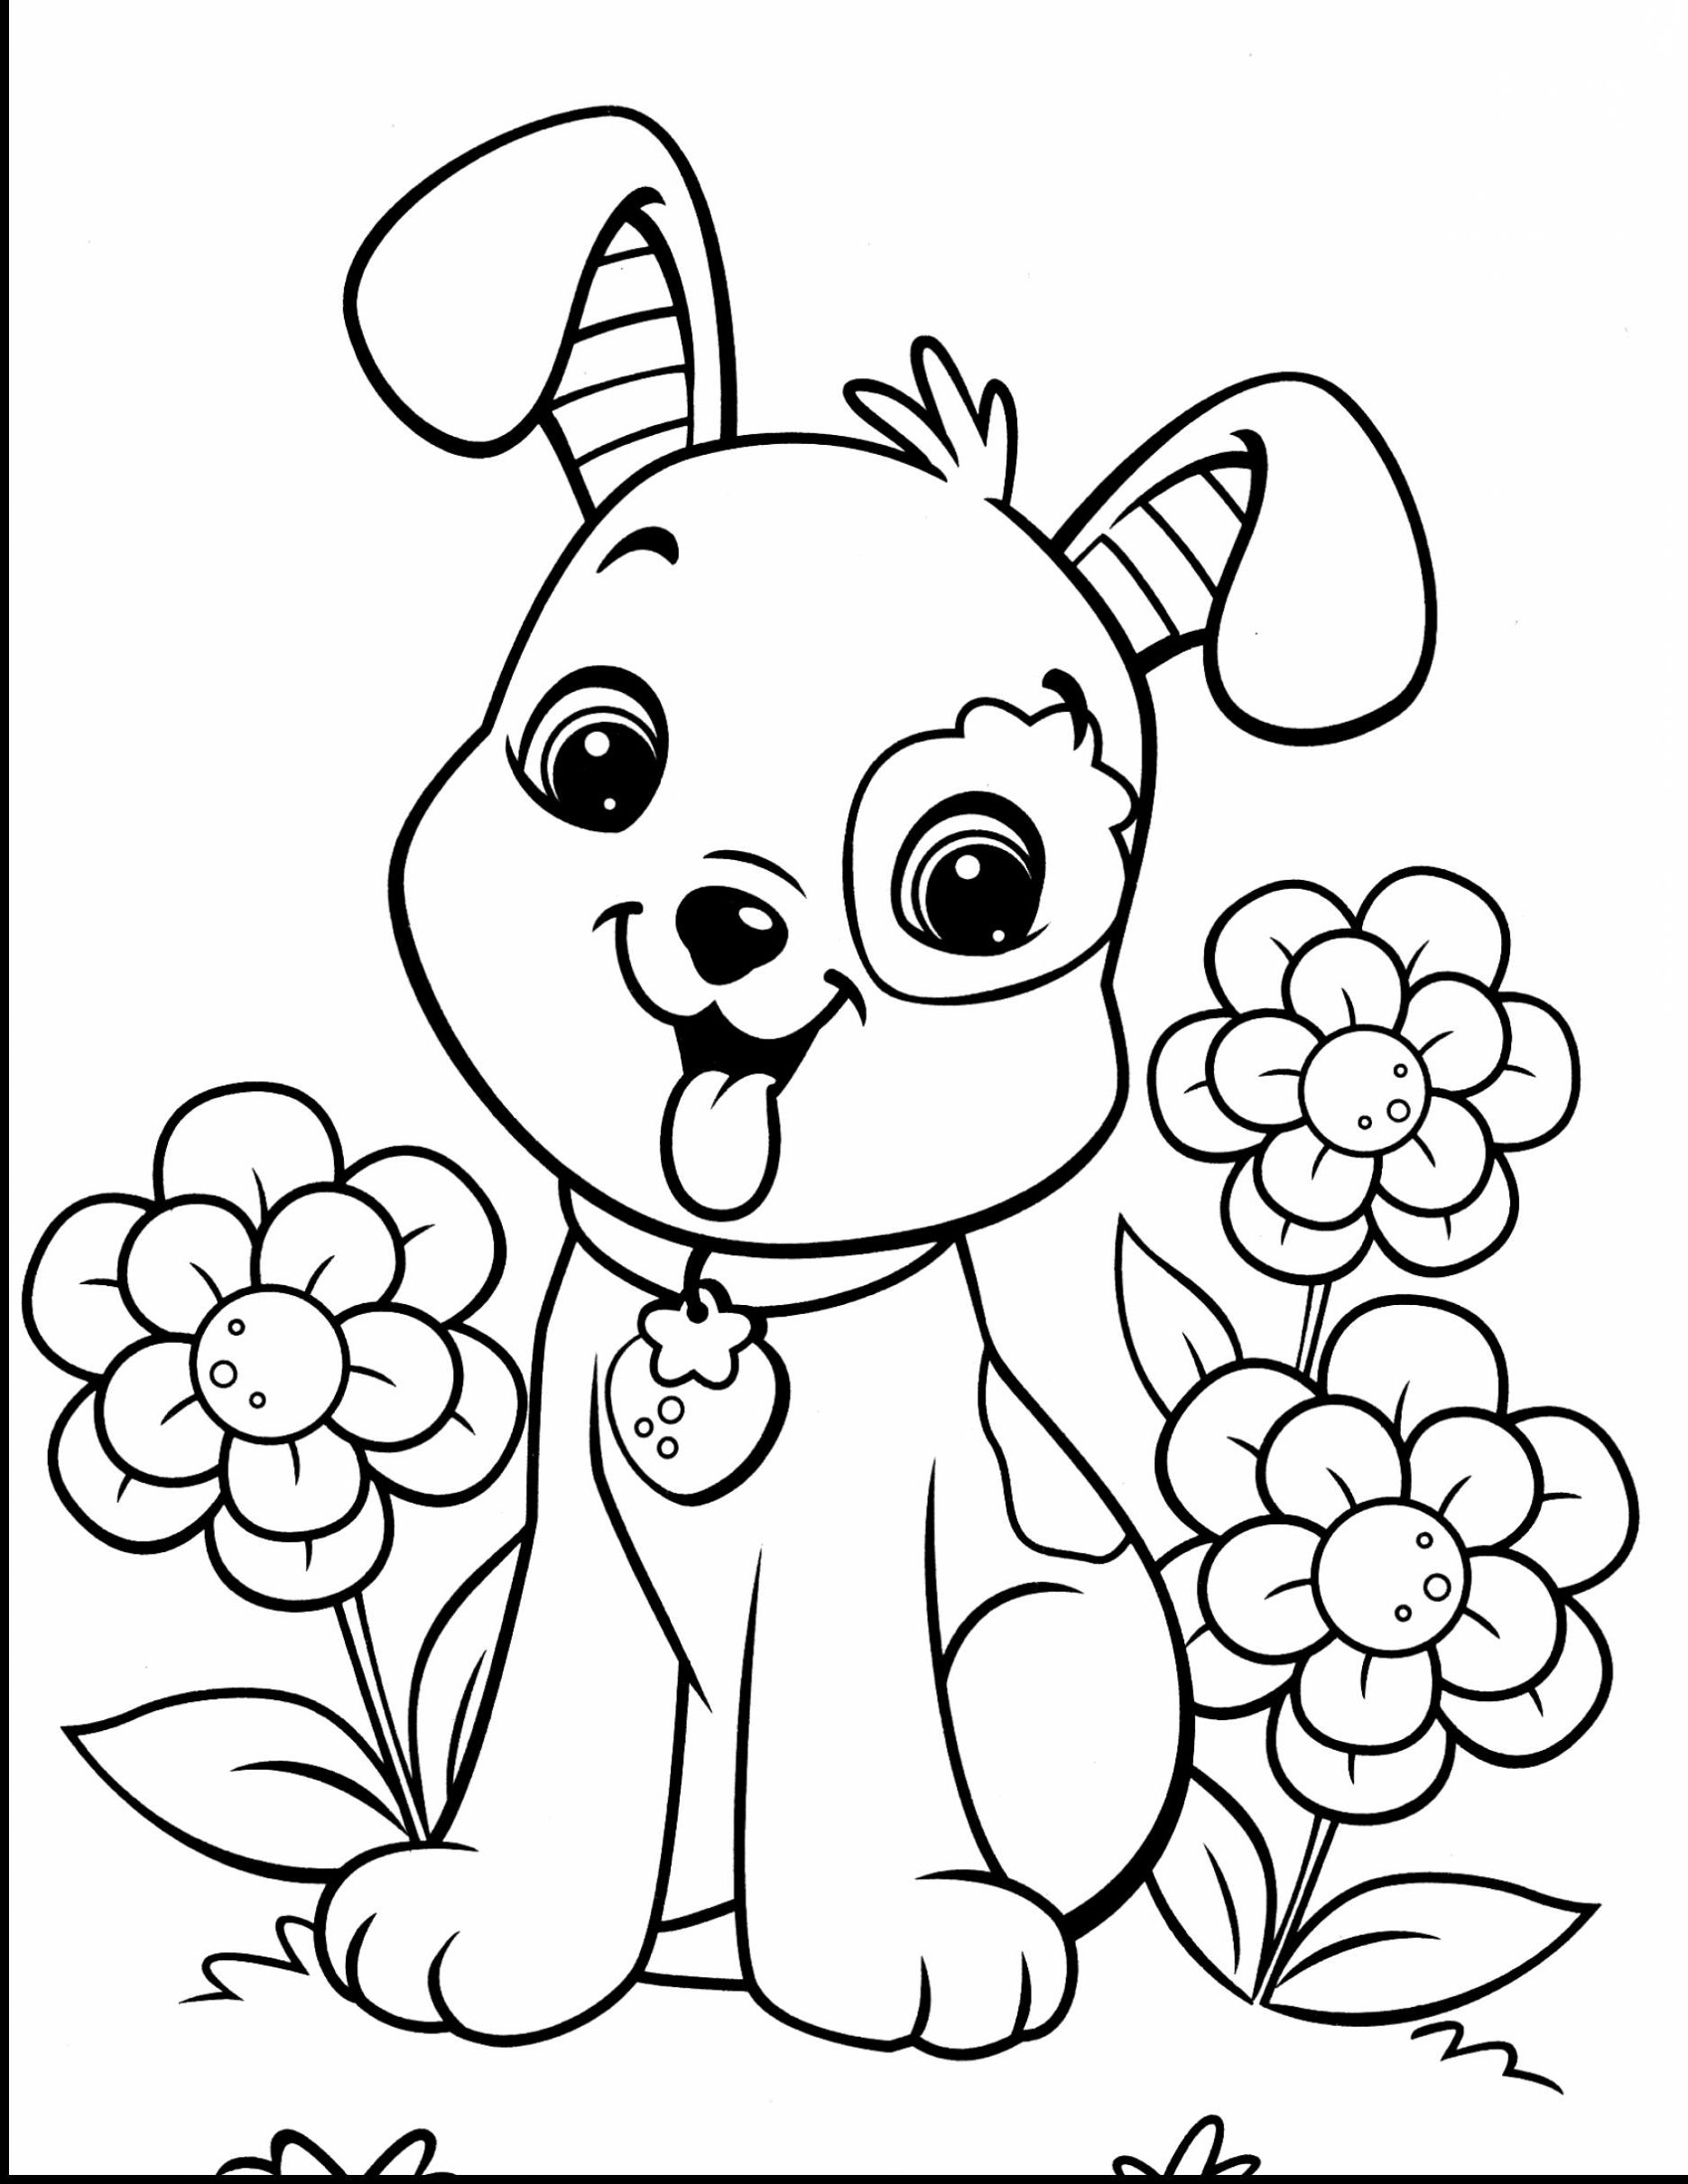 dog coloring free printable cute dog coloring pages collection images dog coloring